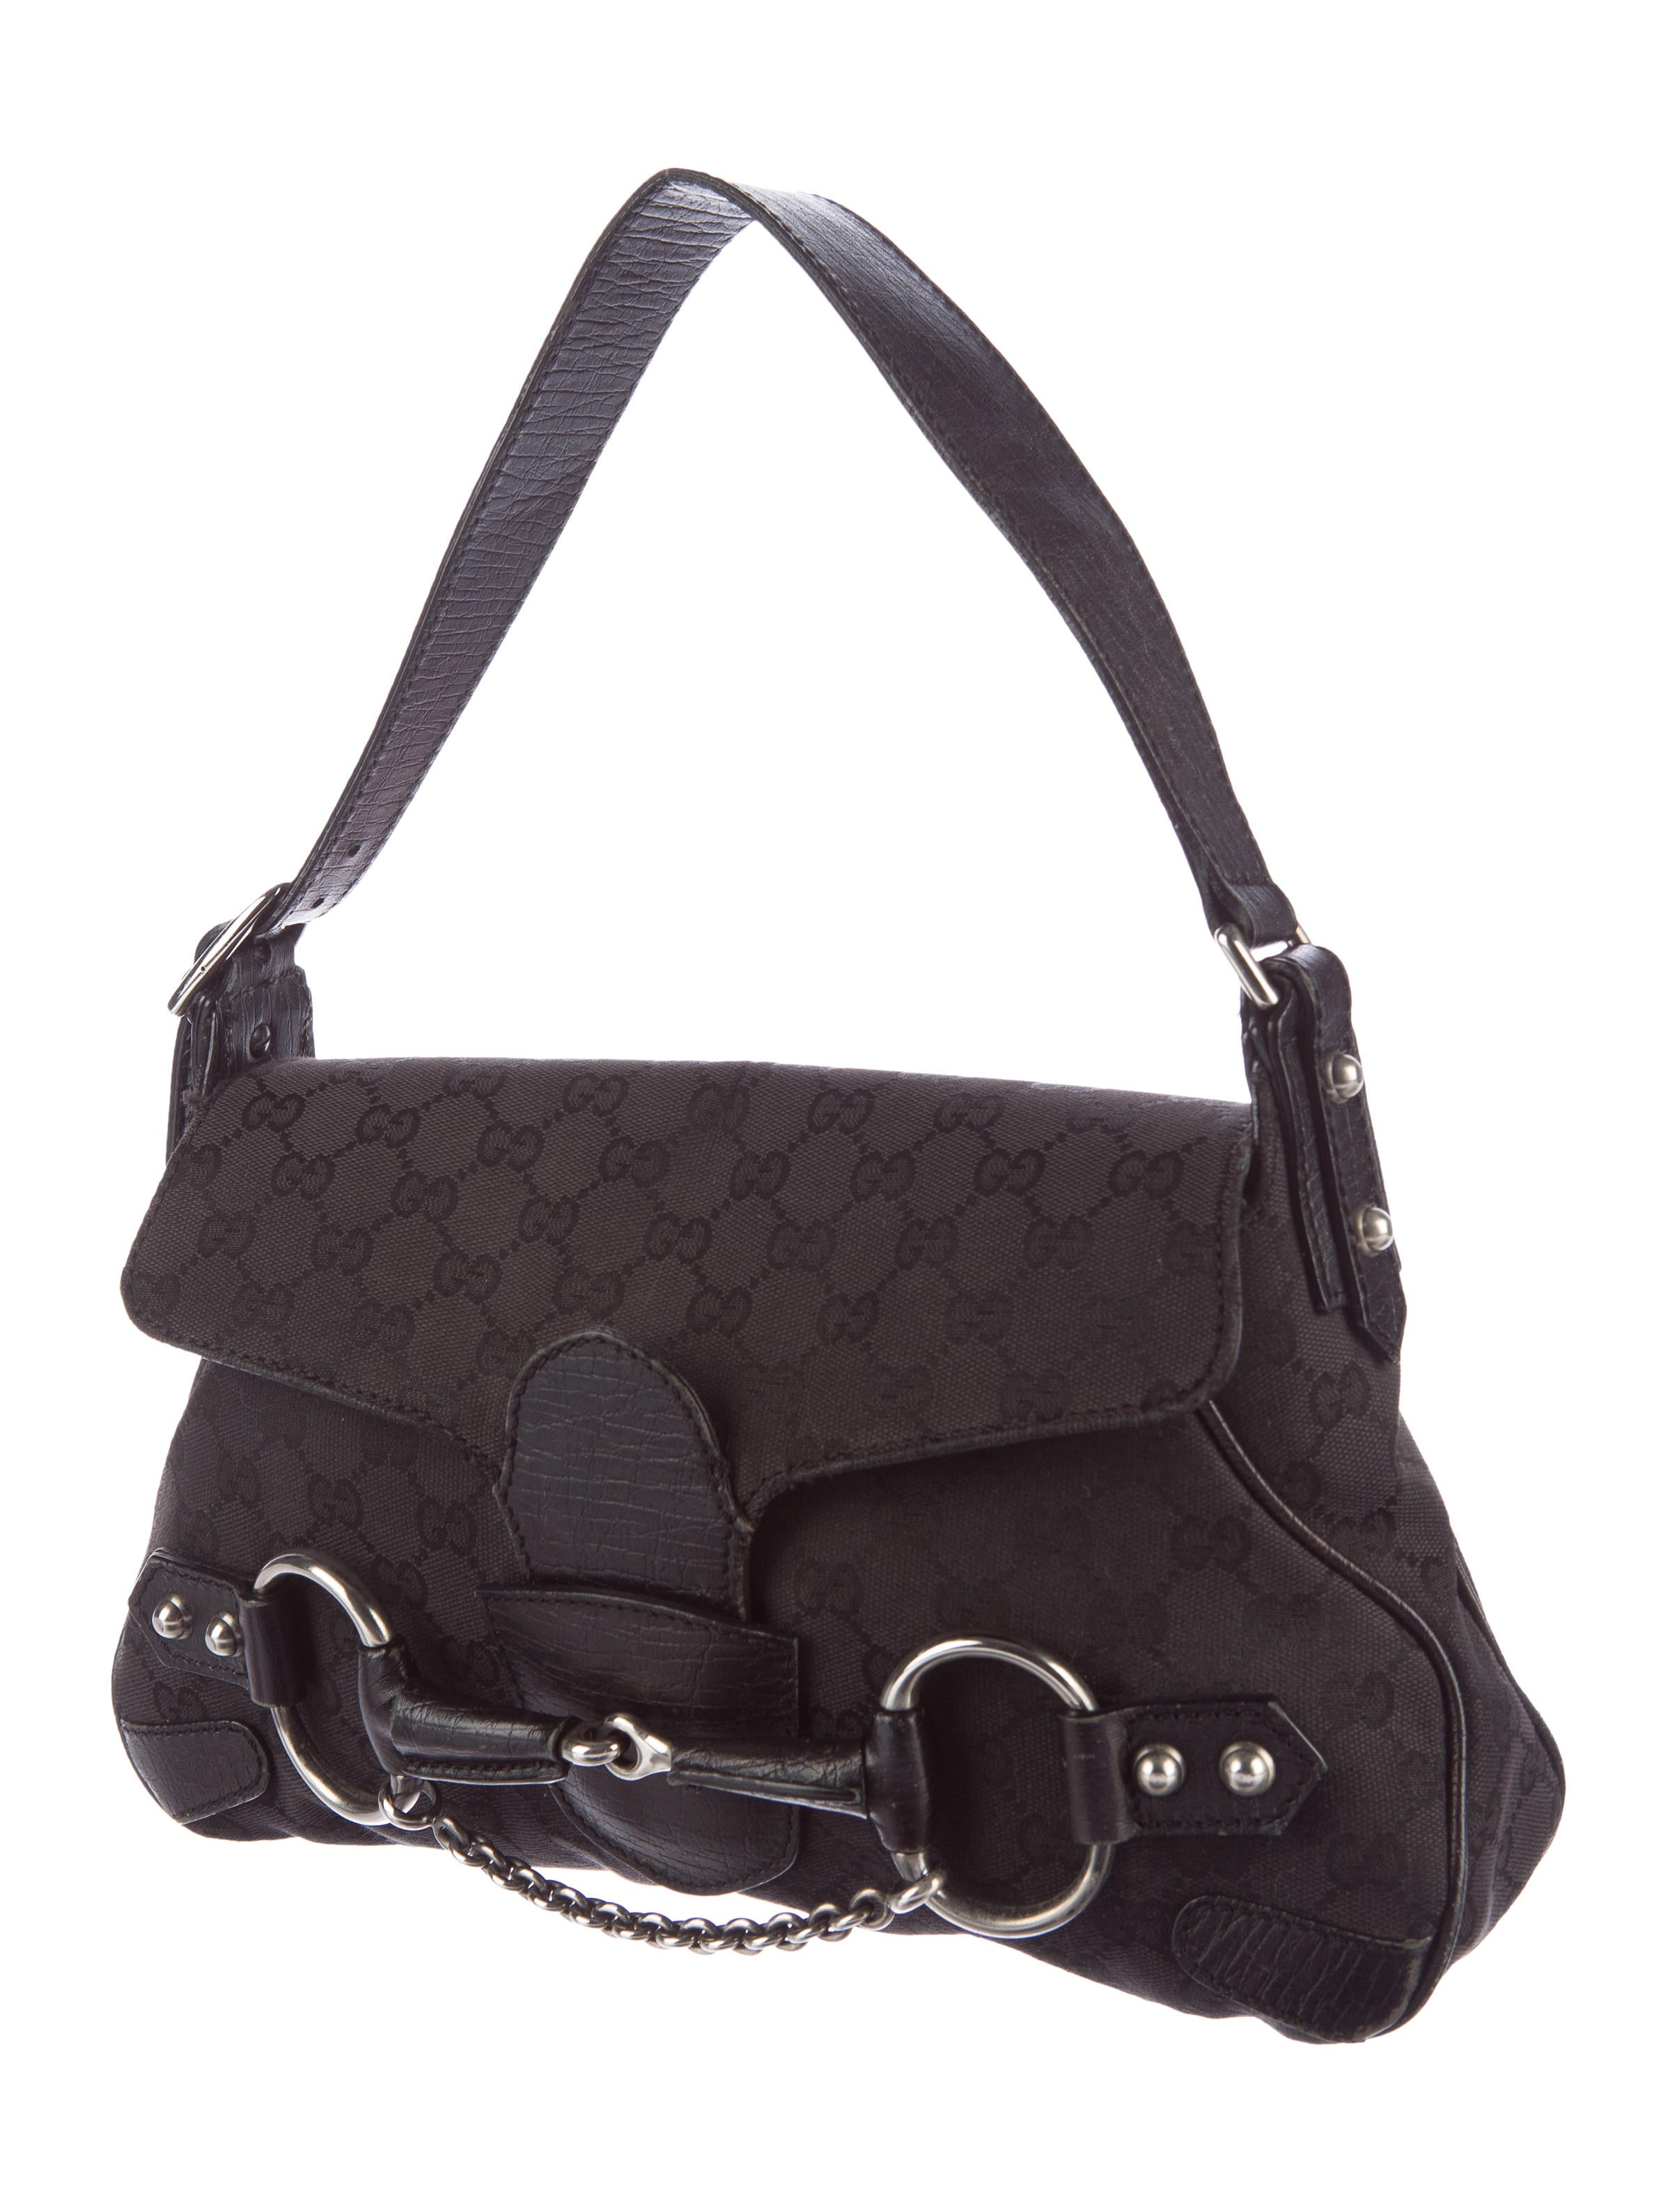 c2bc3fffd24e Used Gucci Large Purses On Sale | Stanford Center for Opportunity ...